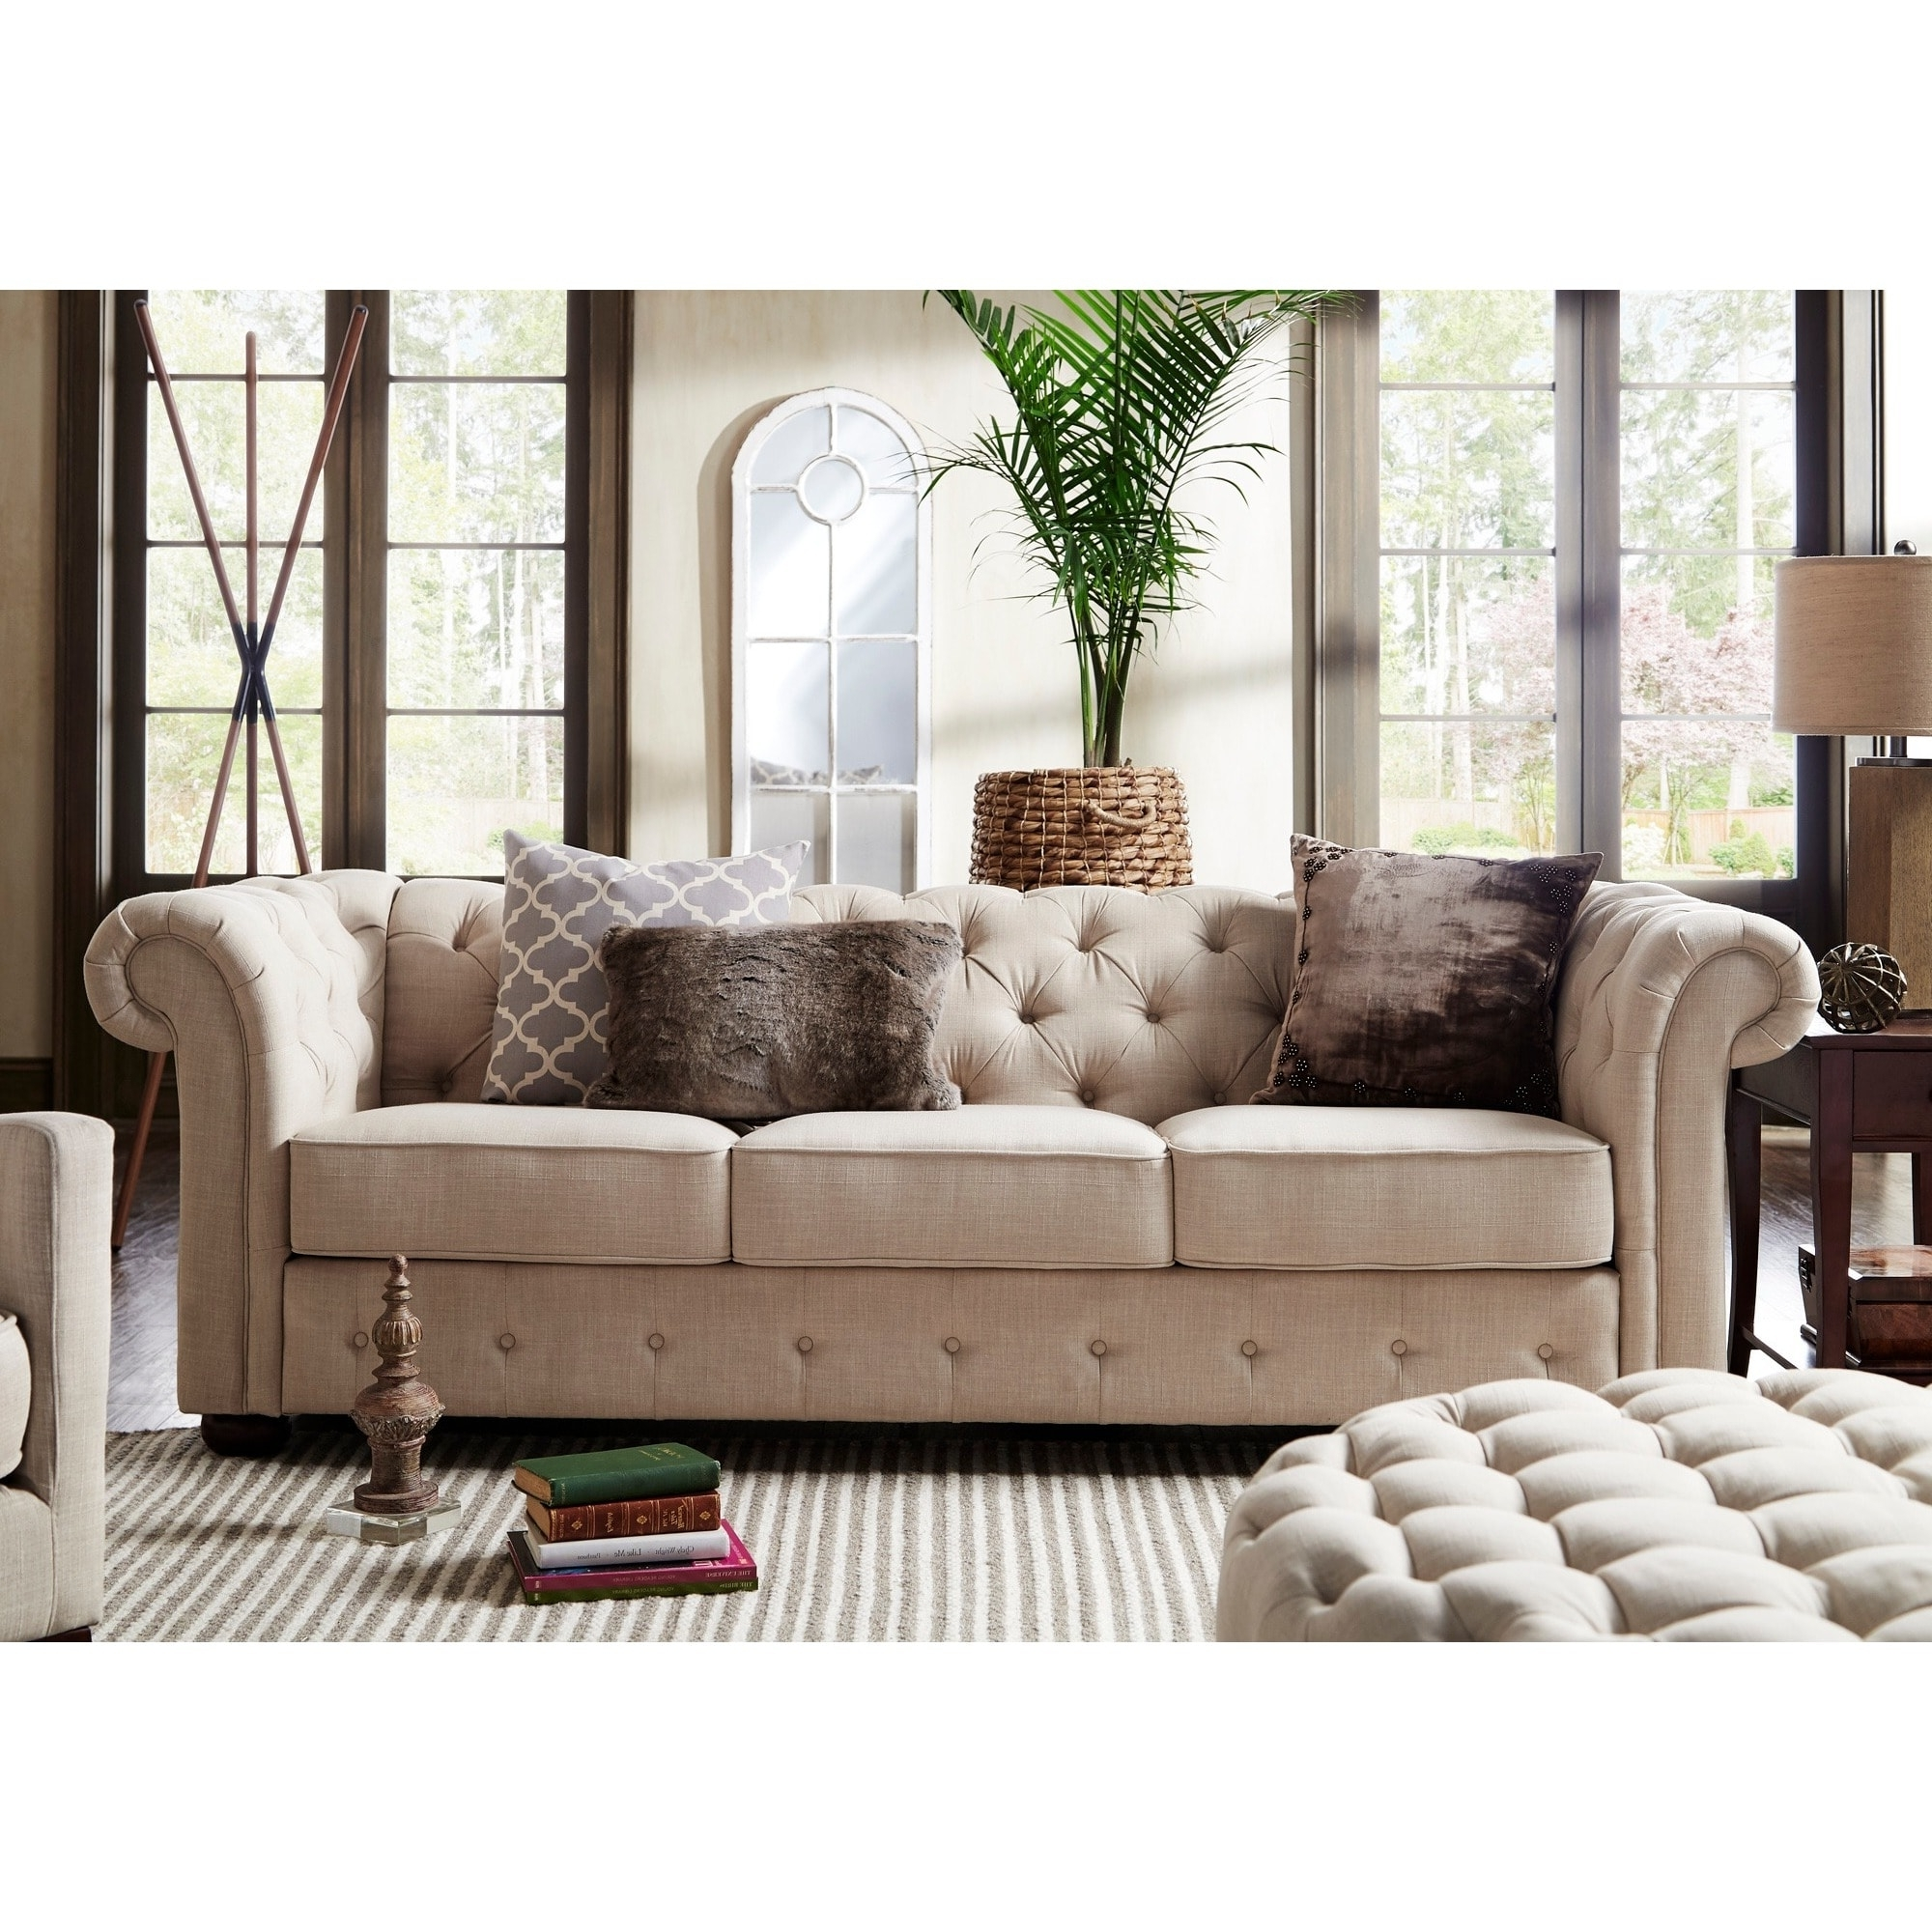 Fashionable Knightsbridge Beige Fabric Button Tufted Chesterfield Sofa And Inside Chesterfield Sofas And Chairs (View 12 of 20)